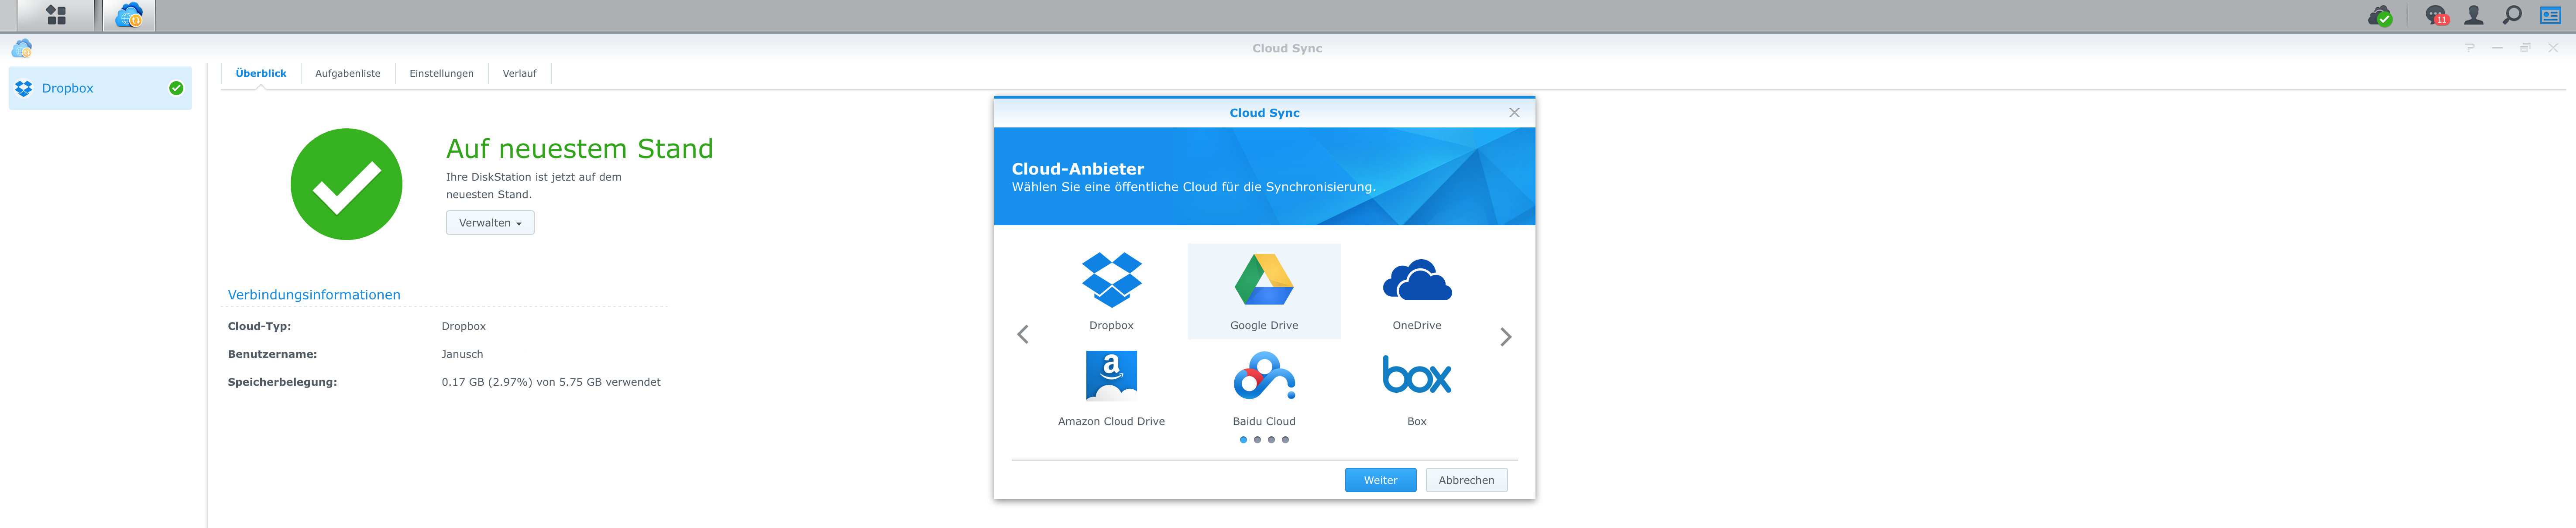 synology_dsm_6_cloud_sync13_1